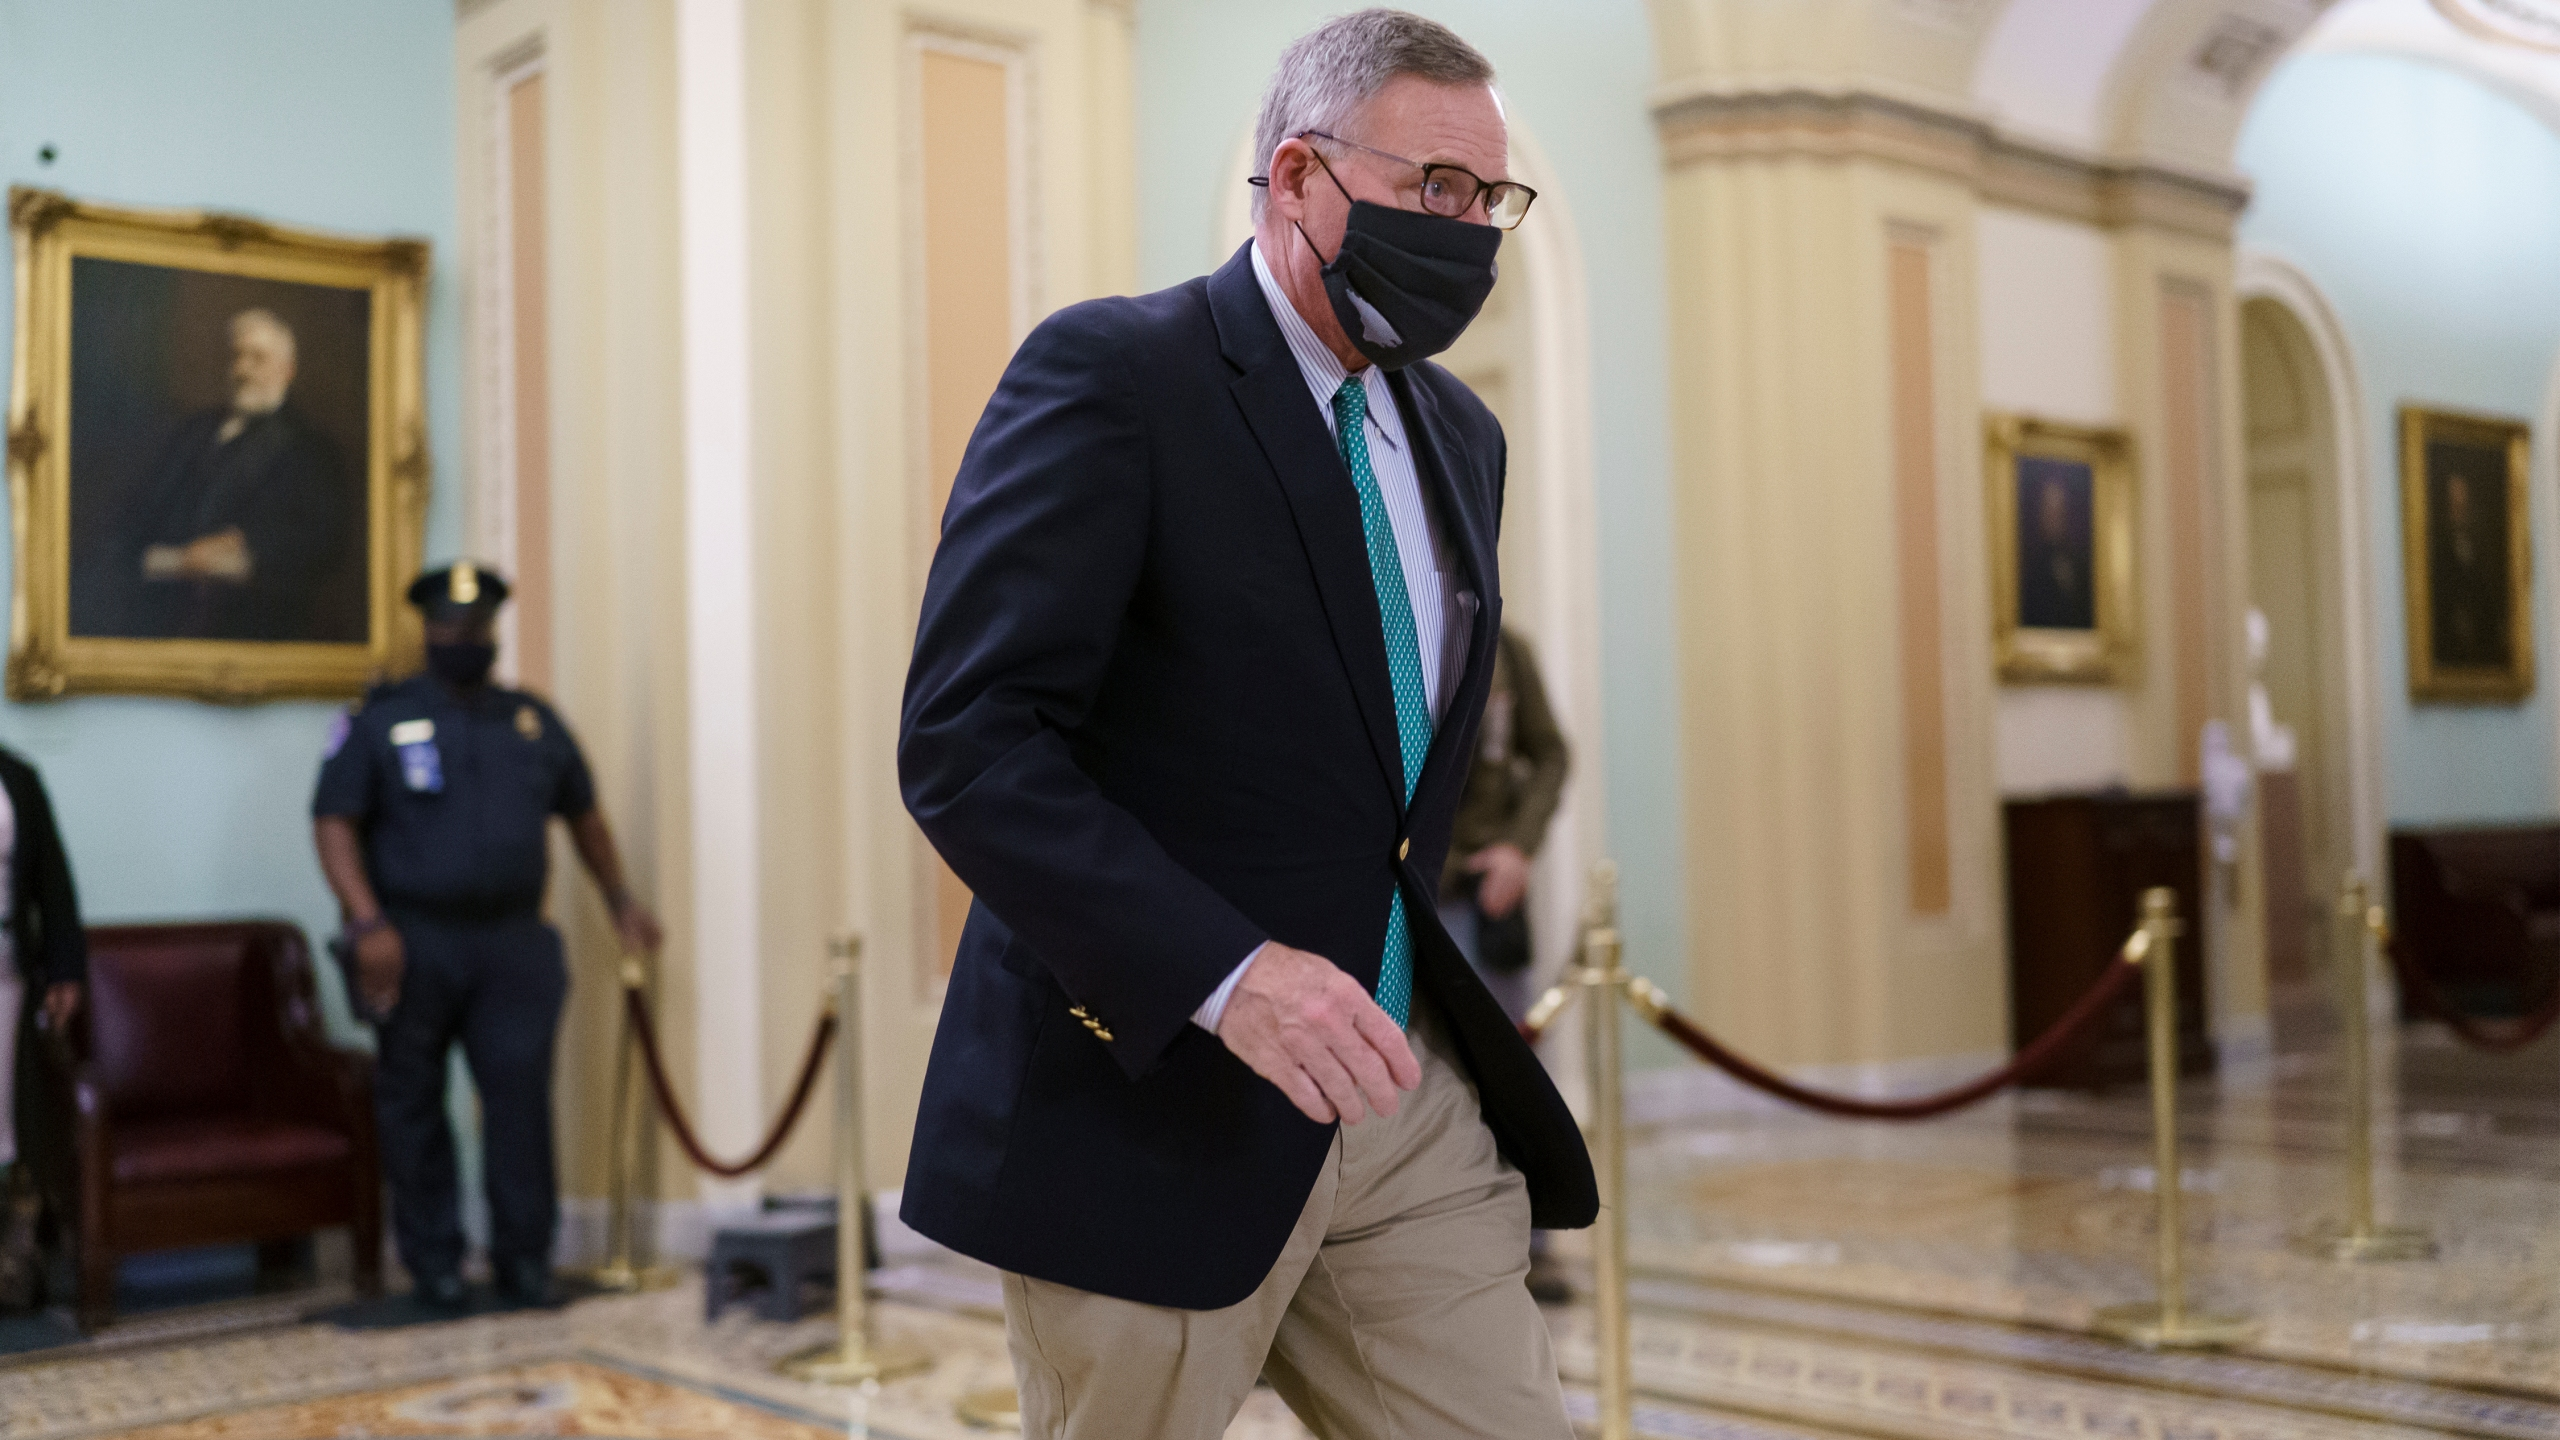 Sen. Richard Burr, R-N.C., leaves the chamber as the Senate voted to consider hearing from witnesses in the impeachment trial of former President Donald Trump, at the Capitol in Washington, Saturday, Feb. 13, 2021. (AP Photo/J. Scott Applewhite)